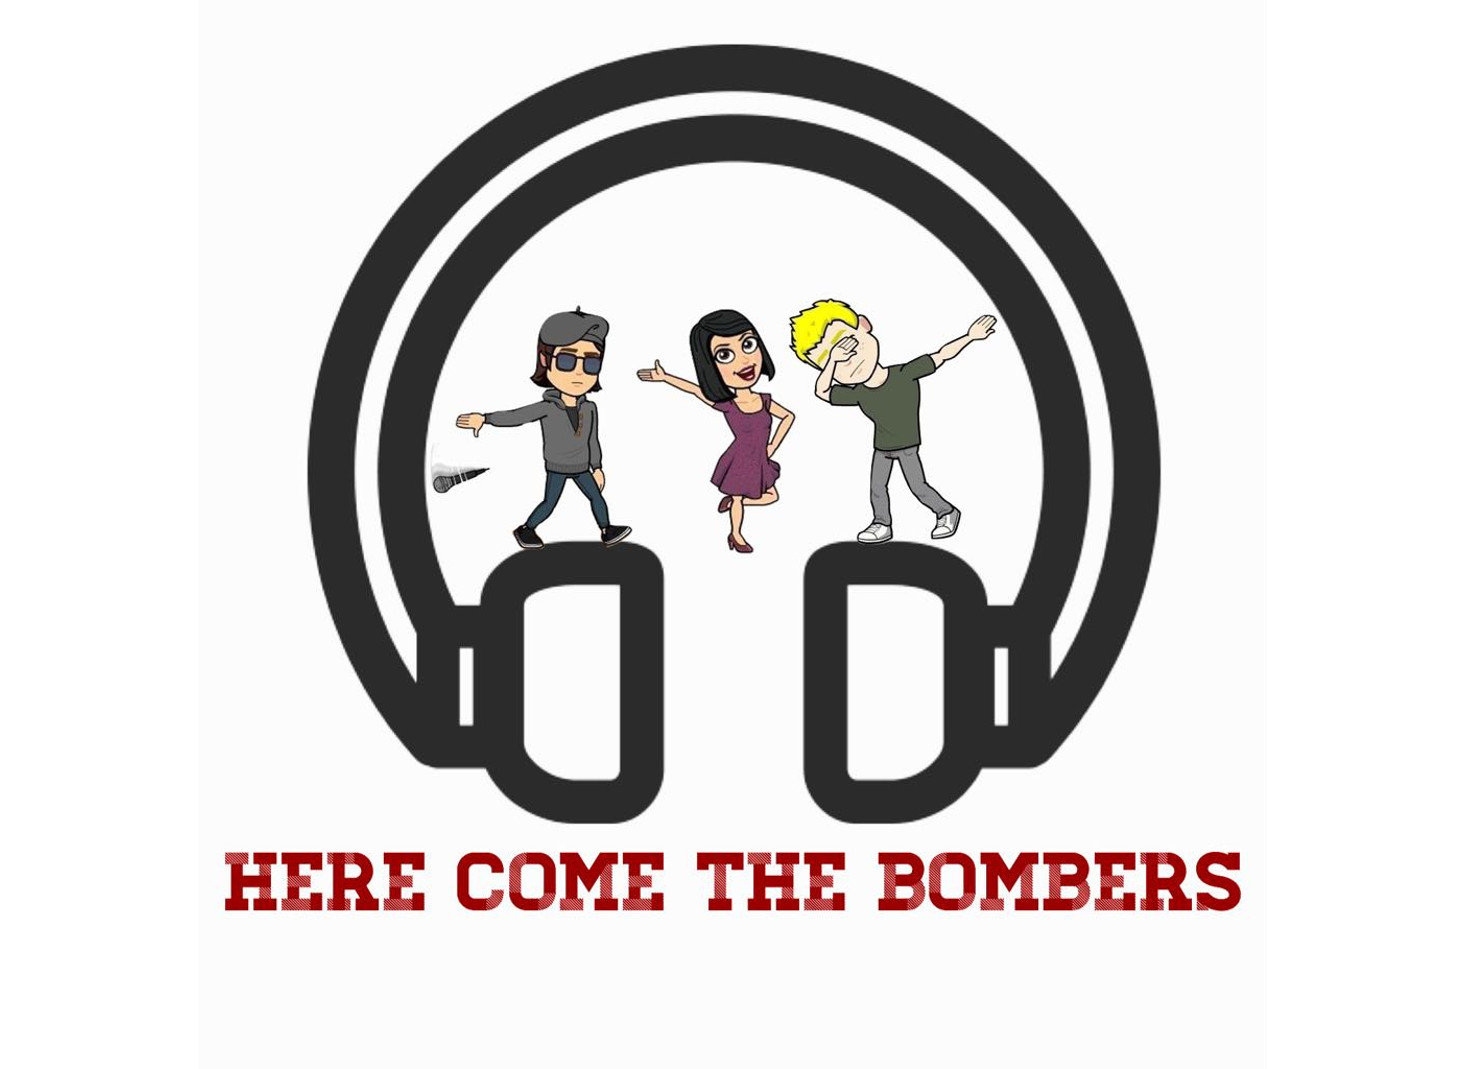 Here come the Bombers